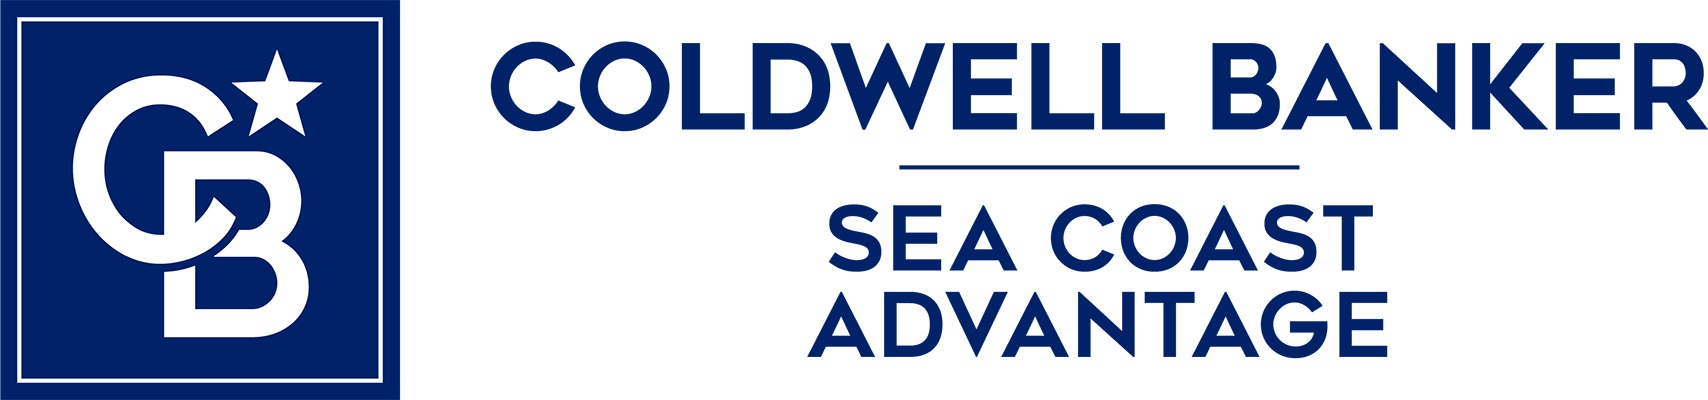 Dana Gore - Coldwell Banker Sea Coast Advantage Realty Logo